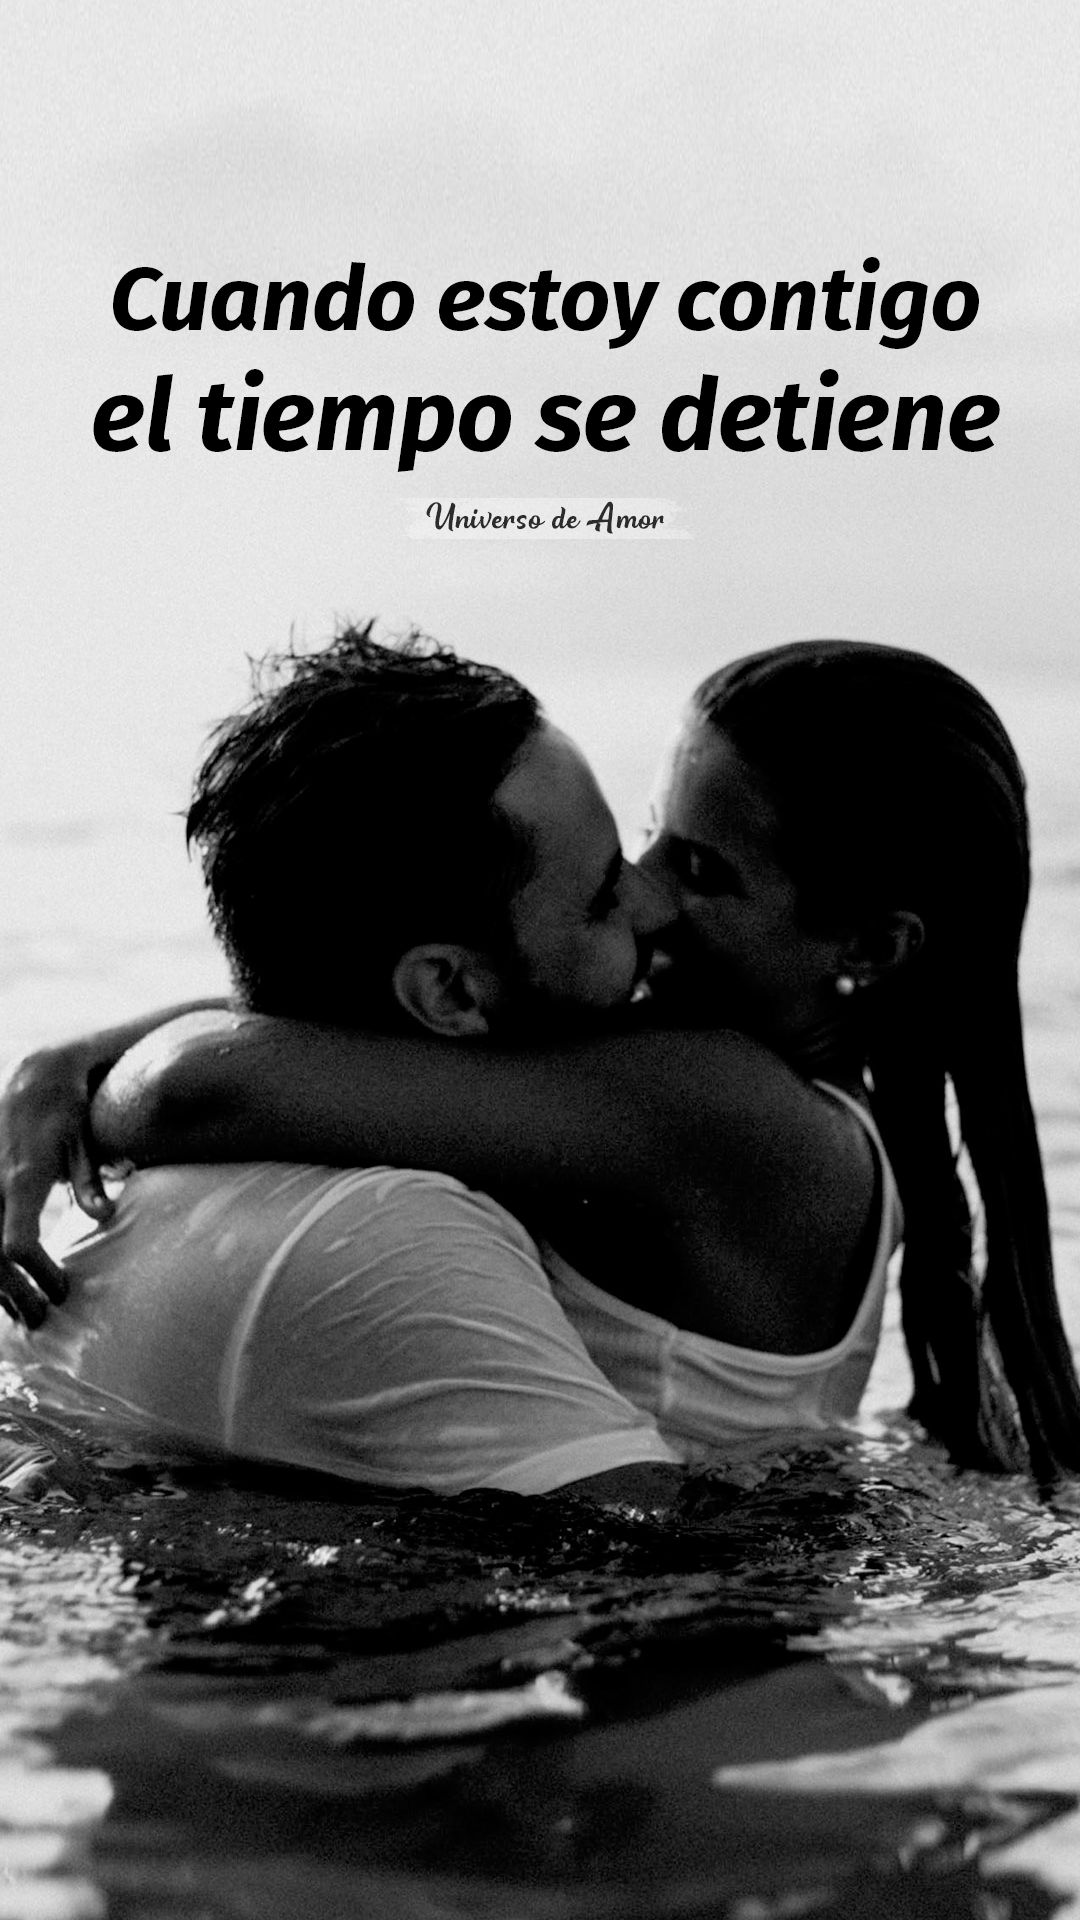 Frases De Amor In 2020 Movie Posters Movies Poster